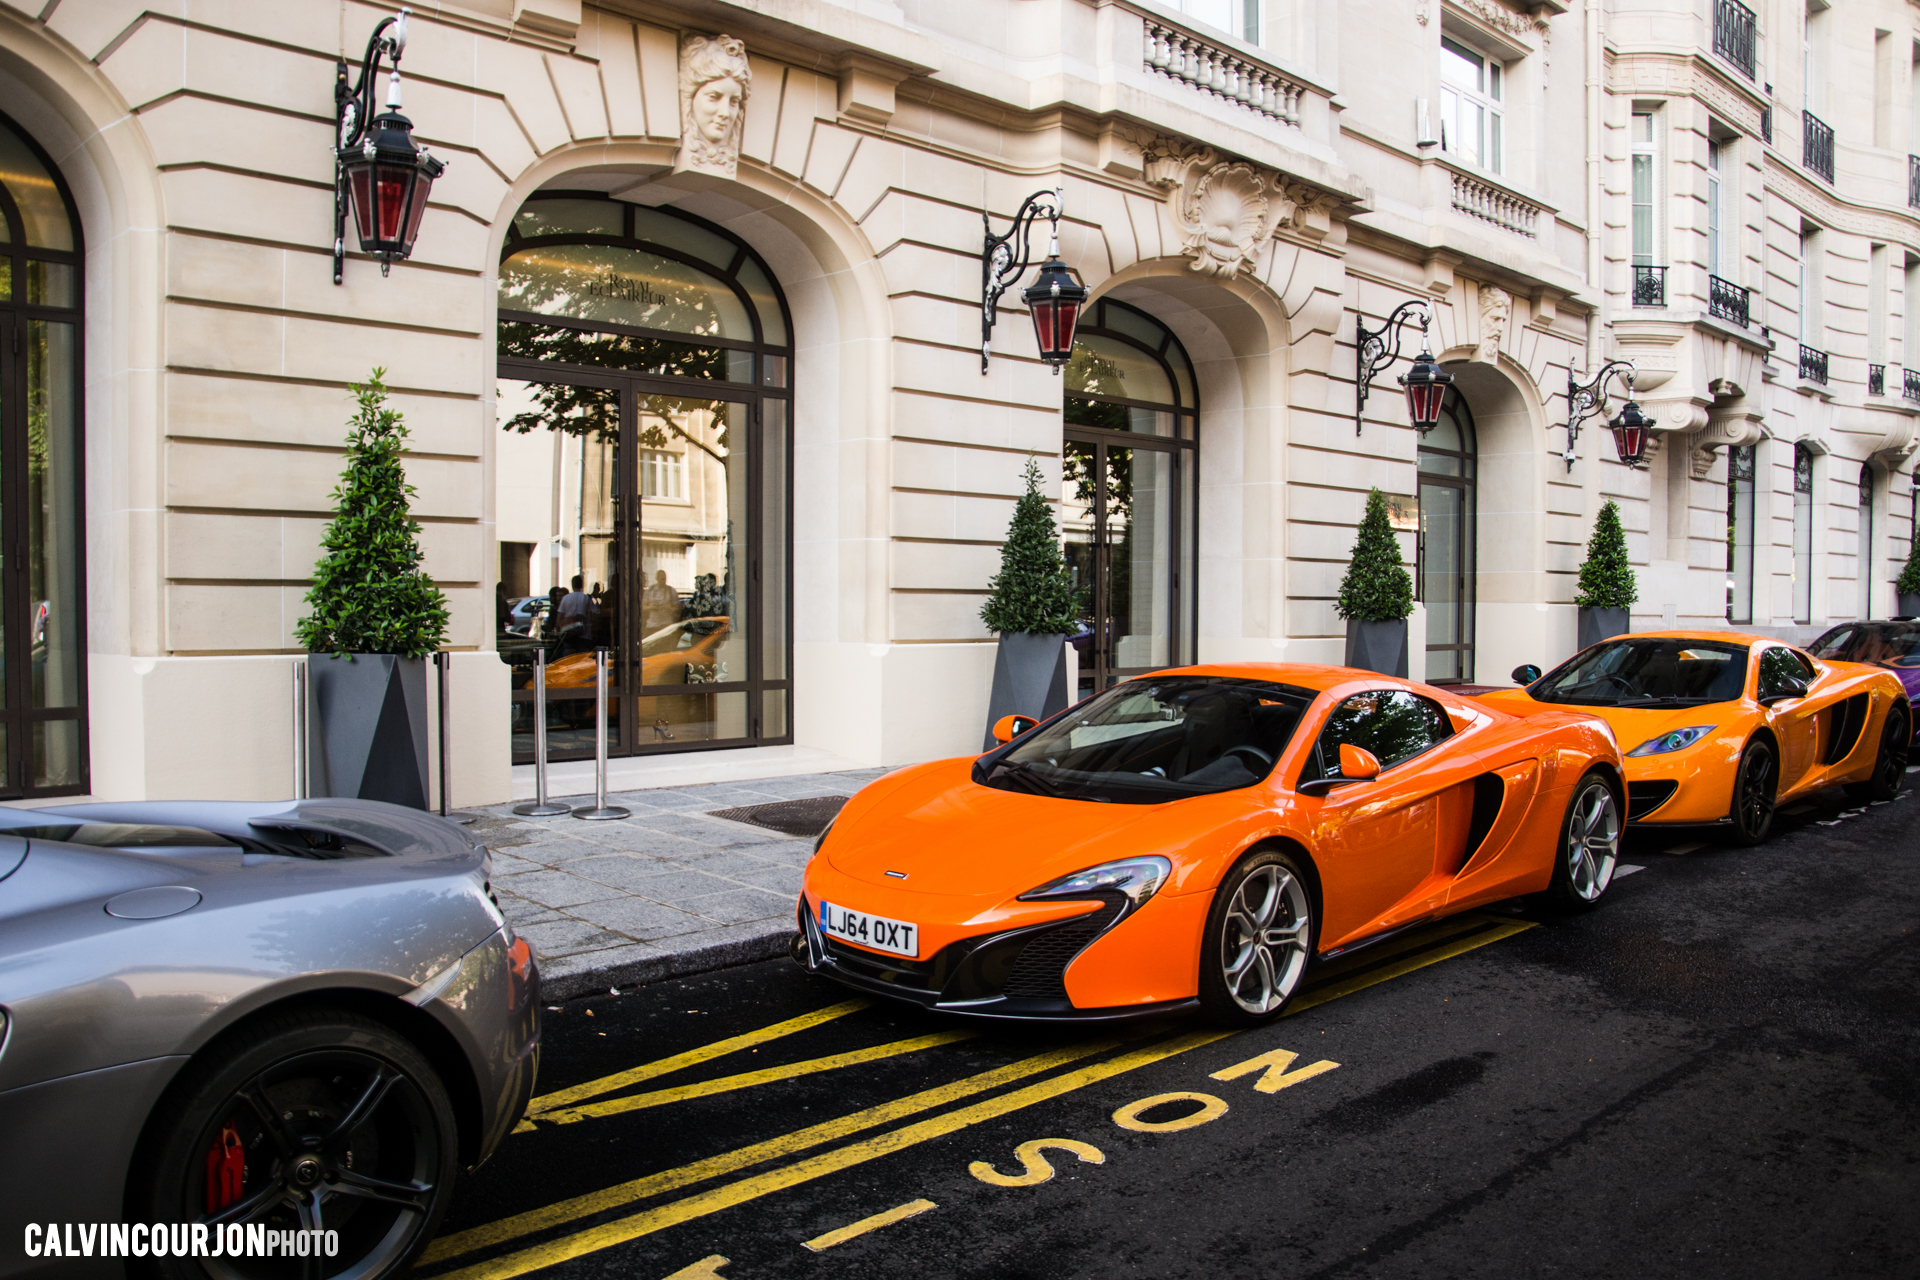 McLaren 650S (Orange) - 2015 - photo Calvin Courjon